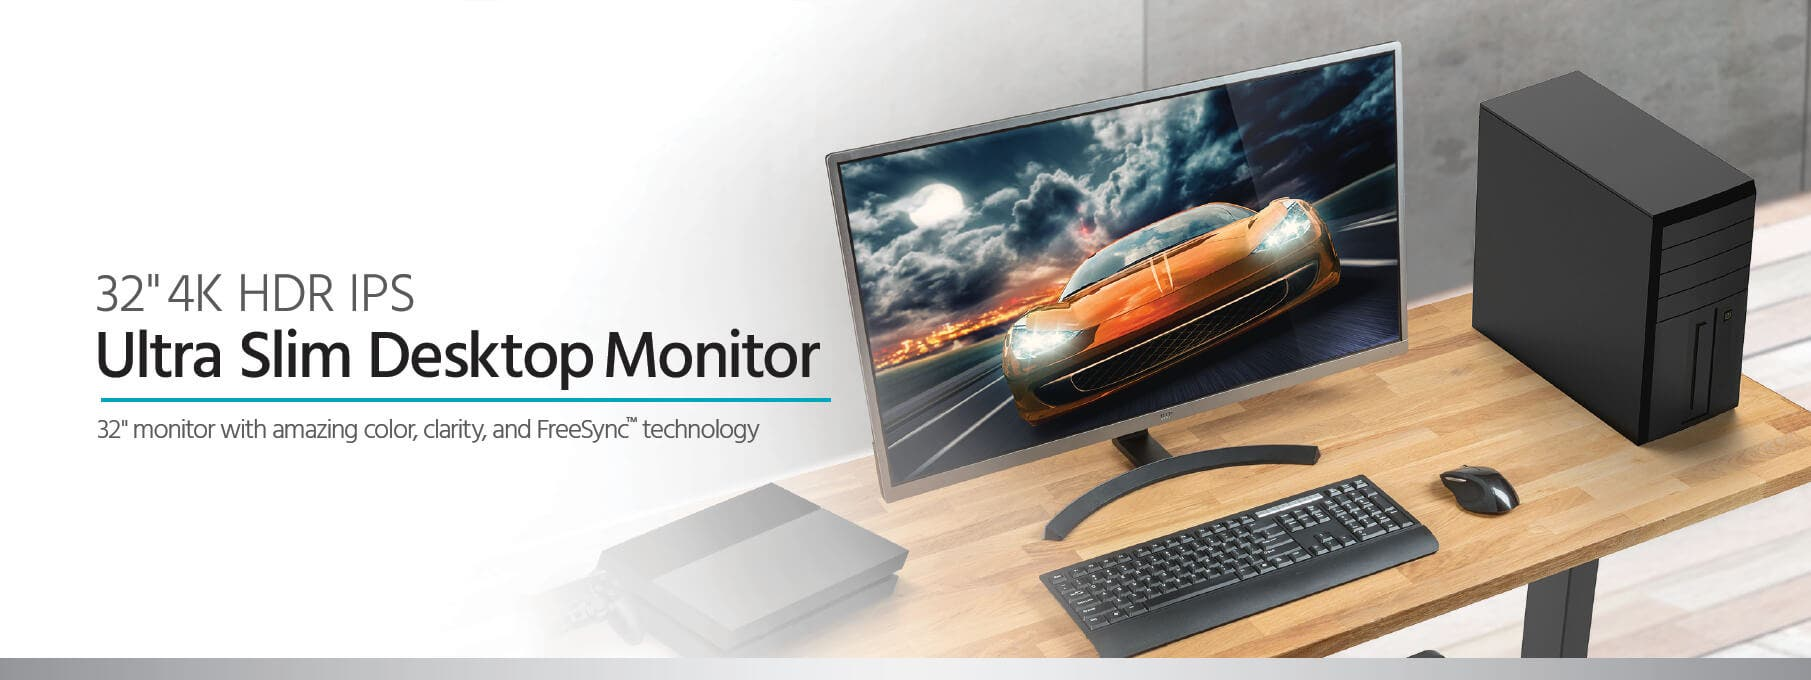 Monoprice 32in CrystalPro Monitor - 4K UHD, 60Hz, HDR